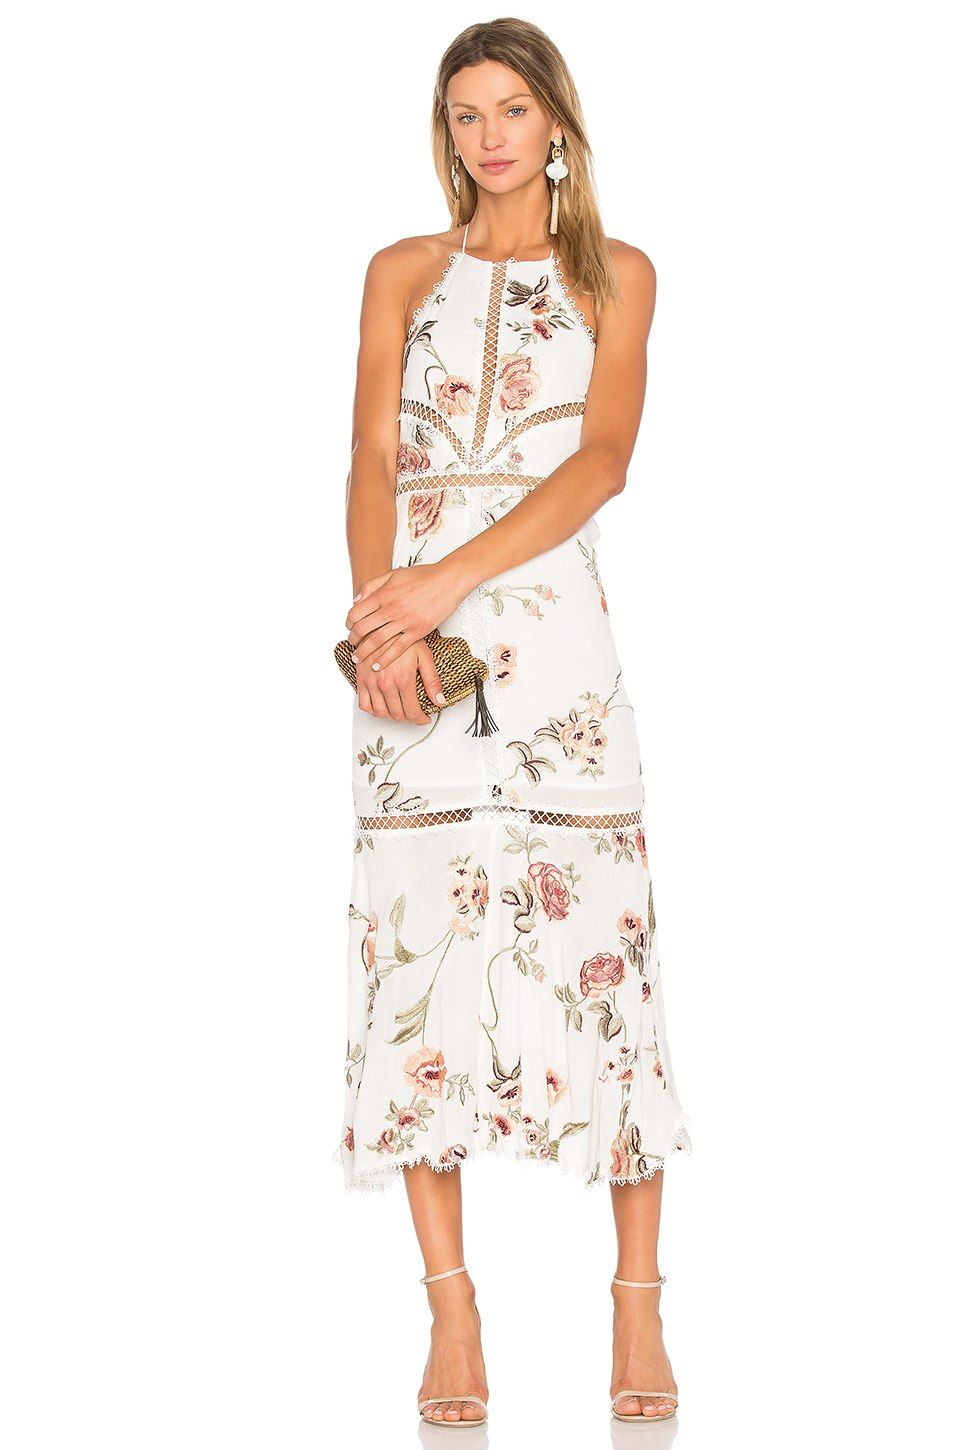 X by NBD Felicity Embroidered Dress in Floral  f46a1bb4b078